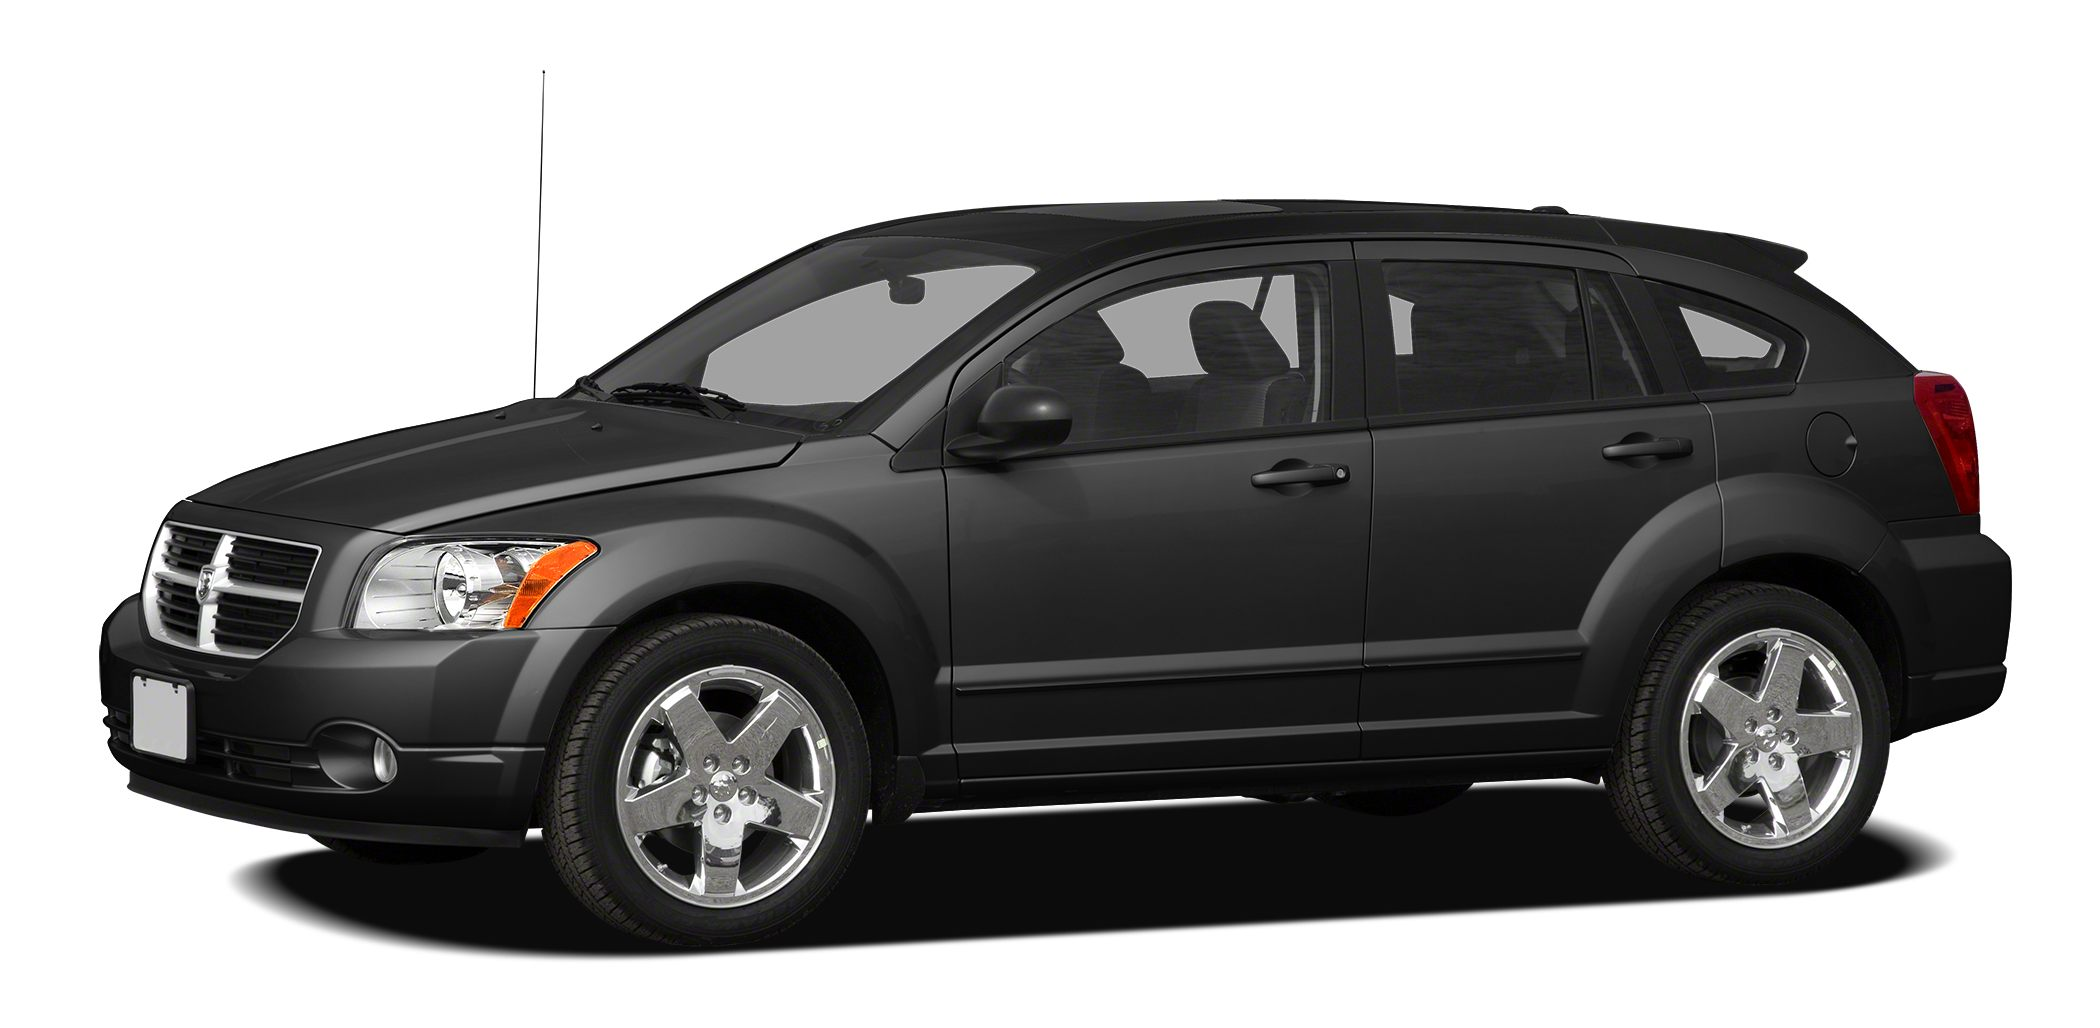 2012 Dodge Caliber SXT Miles 115112Color Black Clearcoat Stock R1362A VIN 1C3CDWDA3CD529418